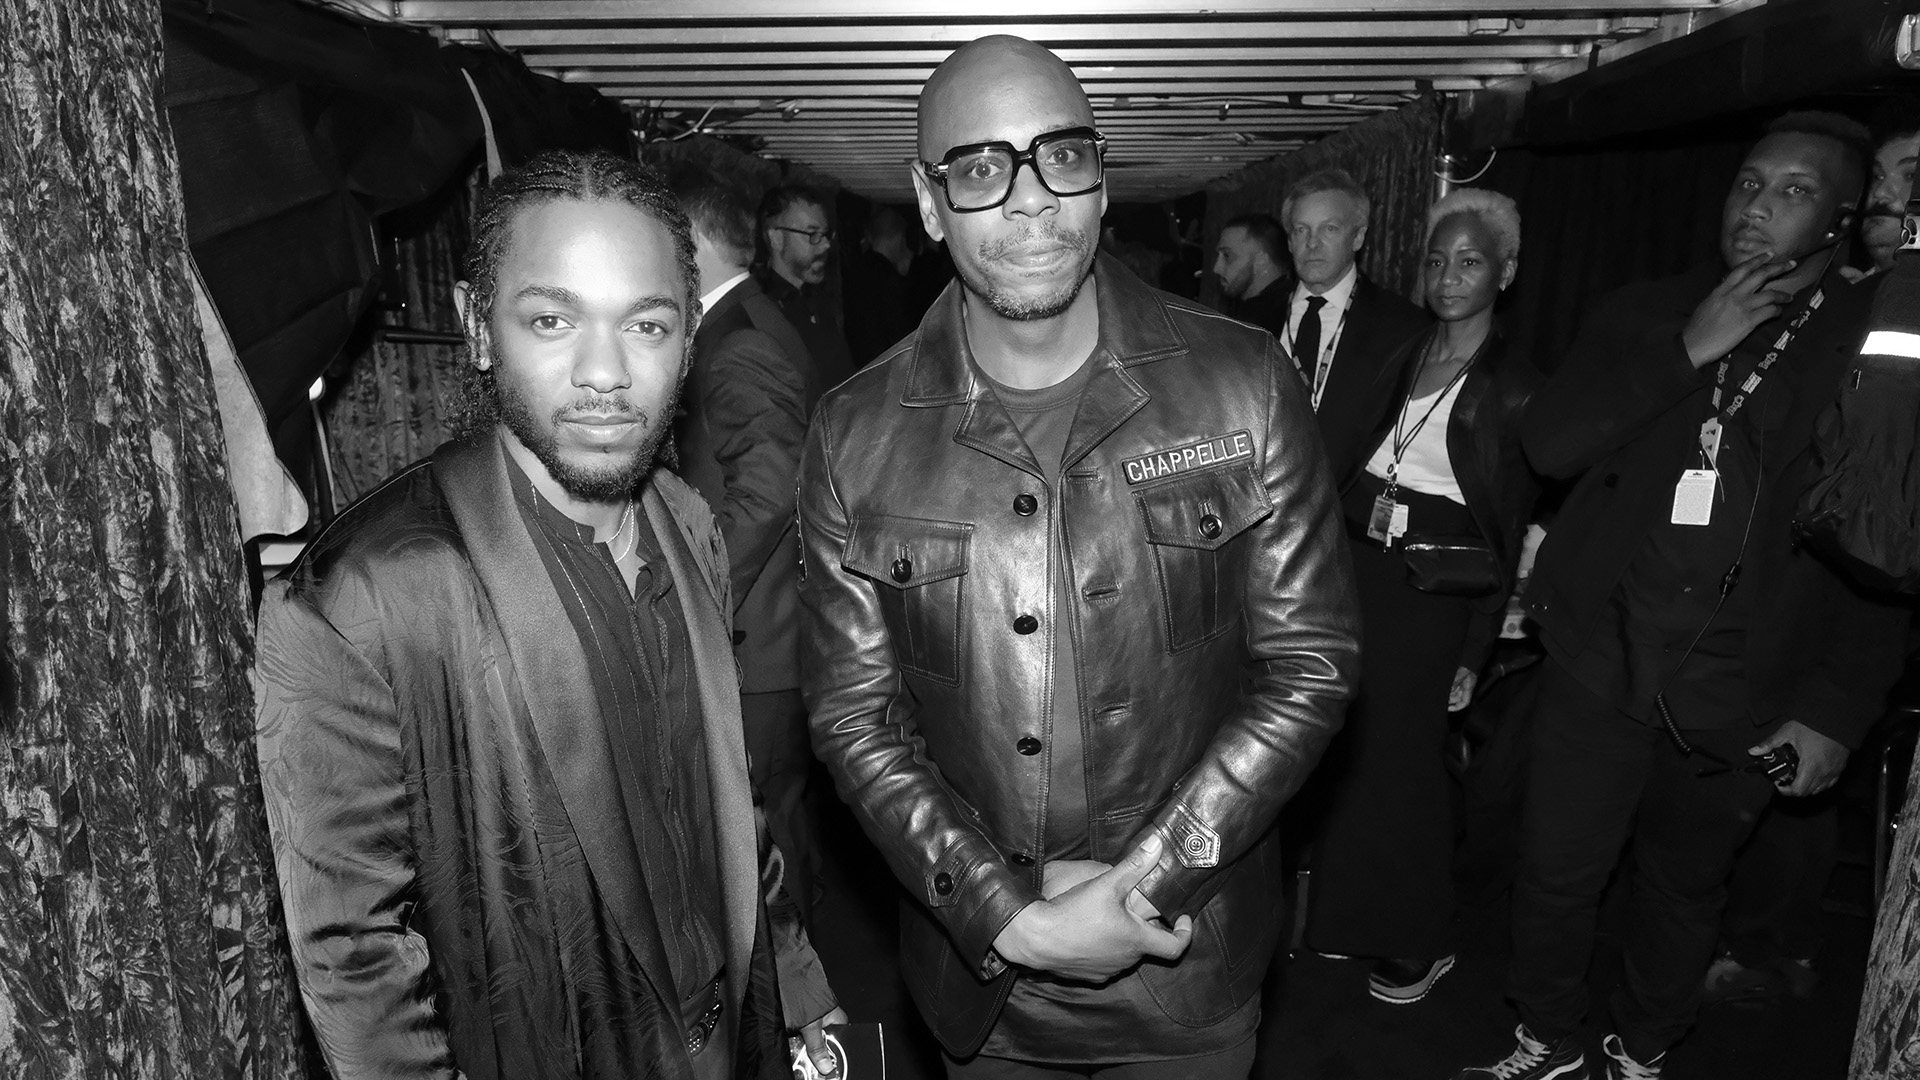 GRAMMY performer and Best Rap Album winner Kendrick Lamar poses with comedian Dave Chapelle.